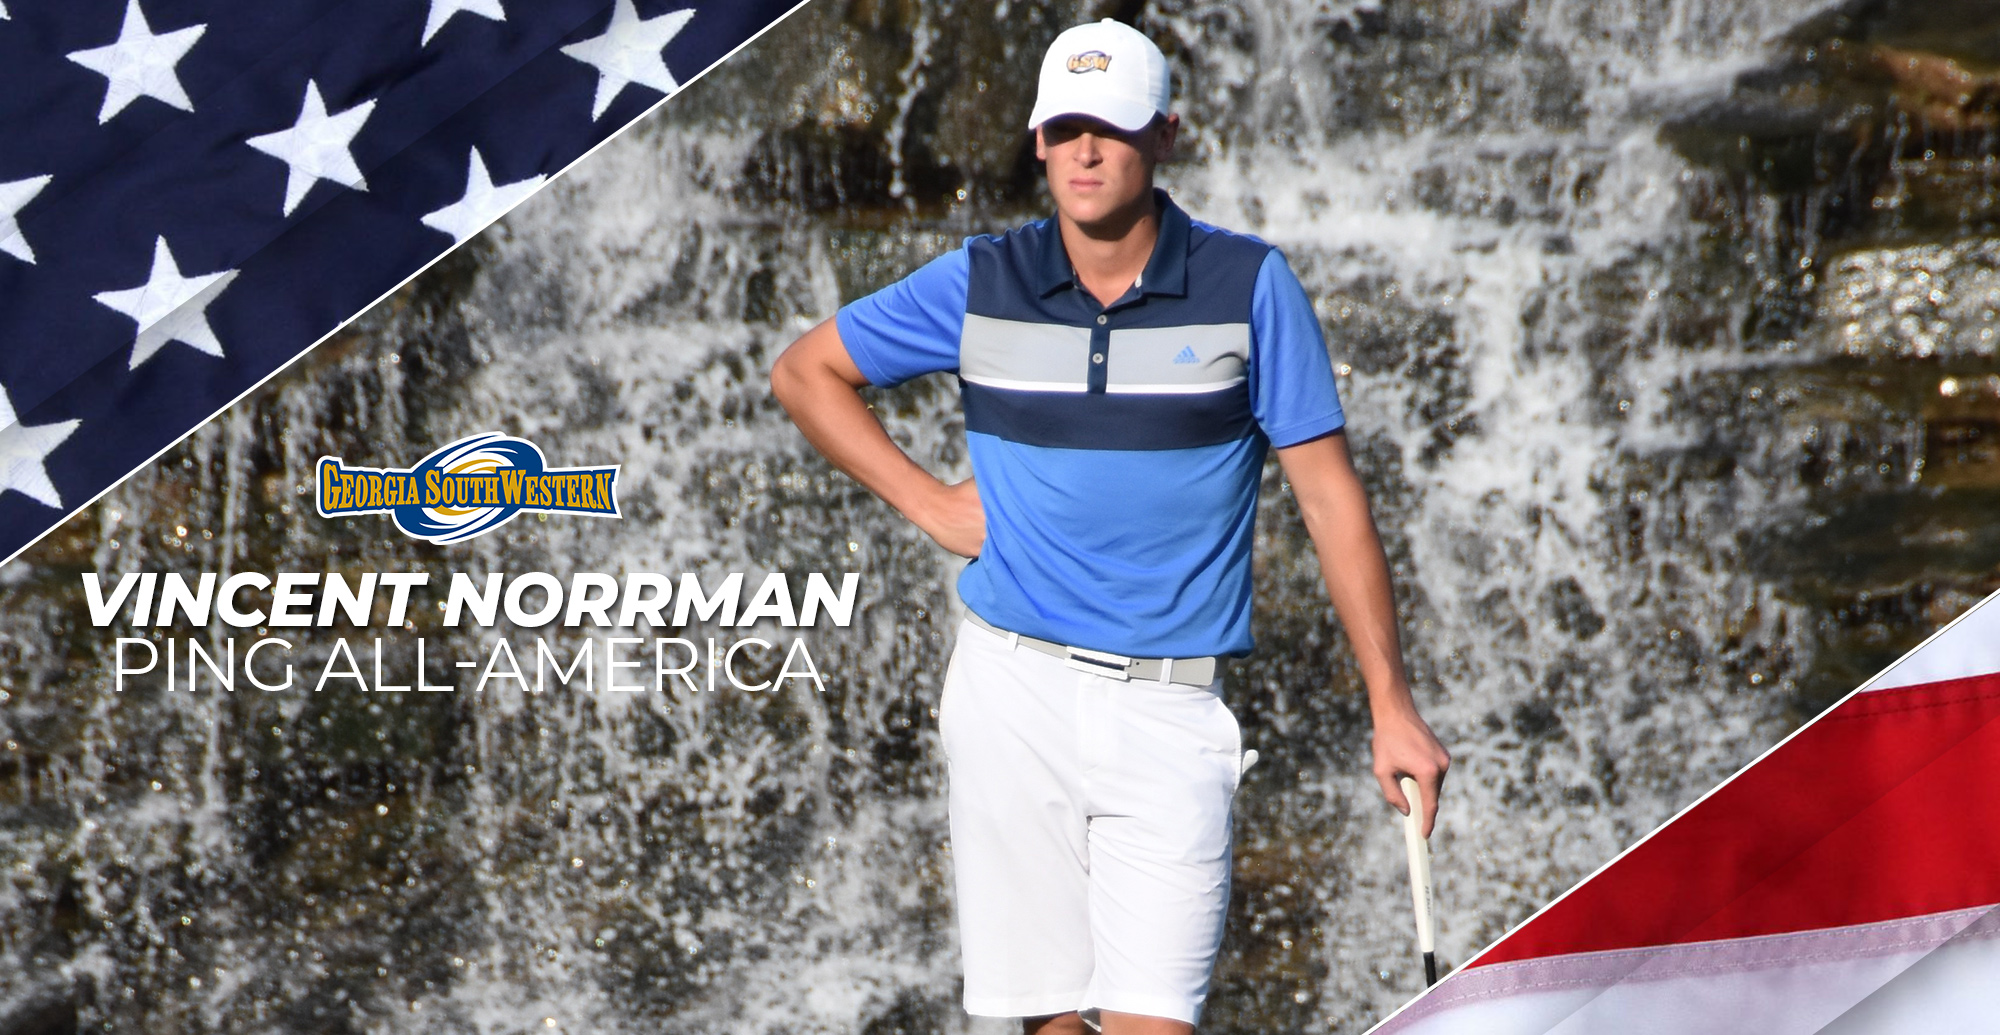 Norrman Caps Season with All-America Honors